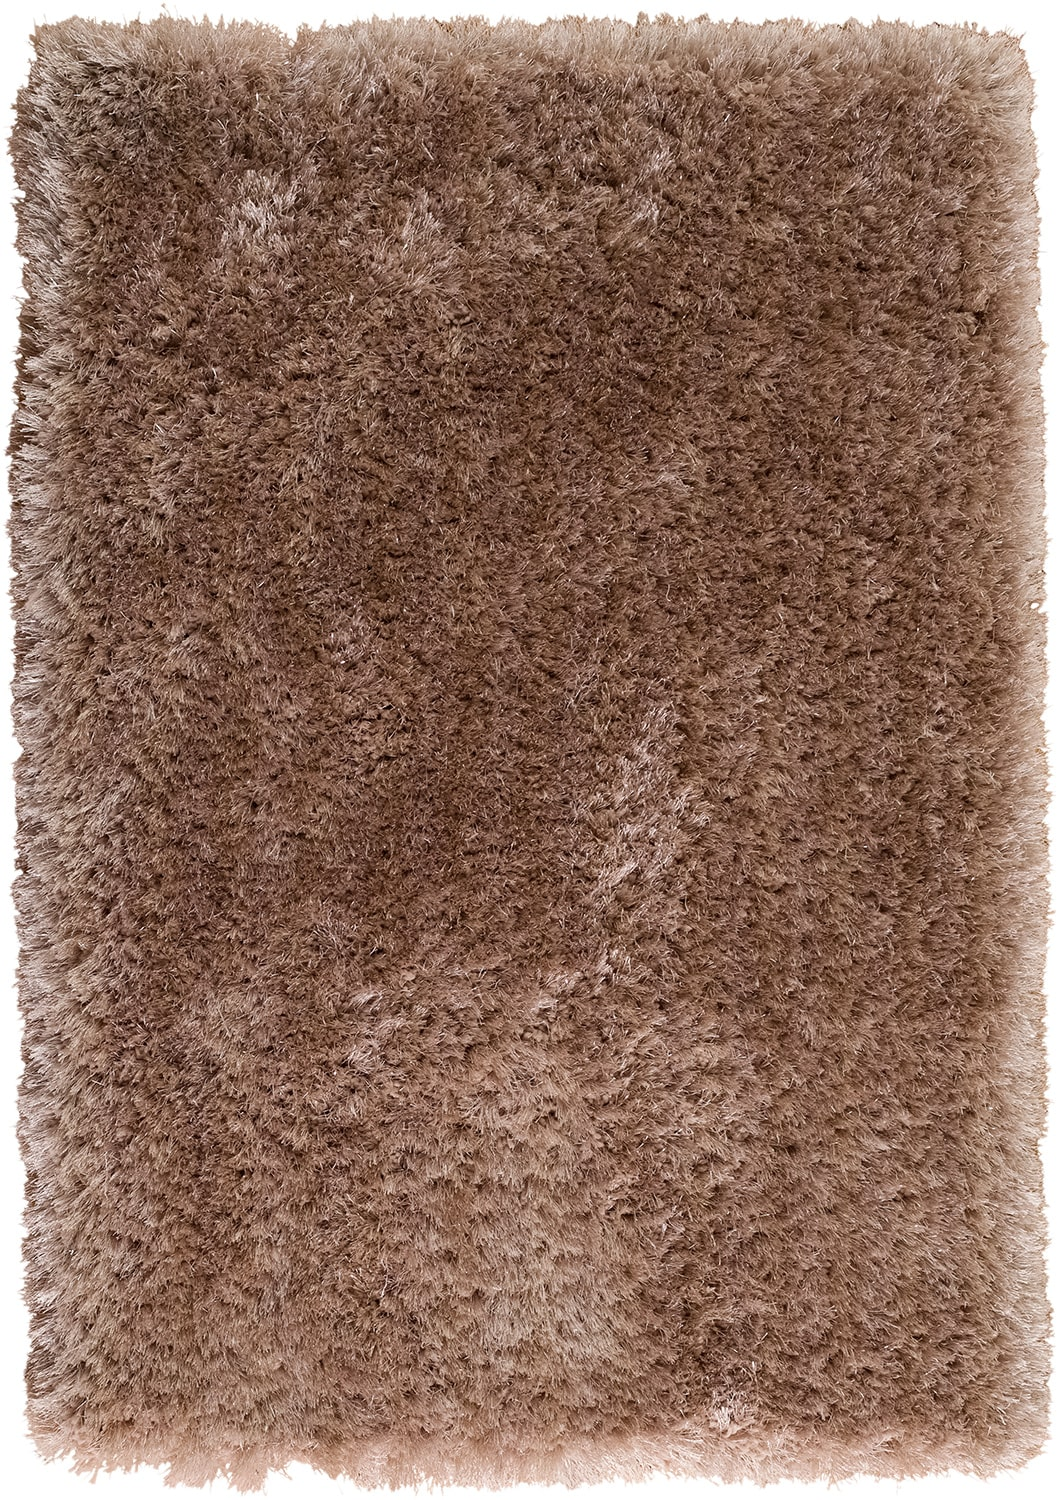 Sparkle Champagne Area Rug – 5' x 8'